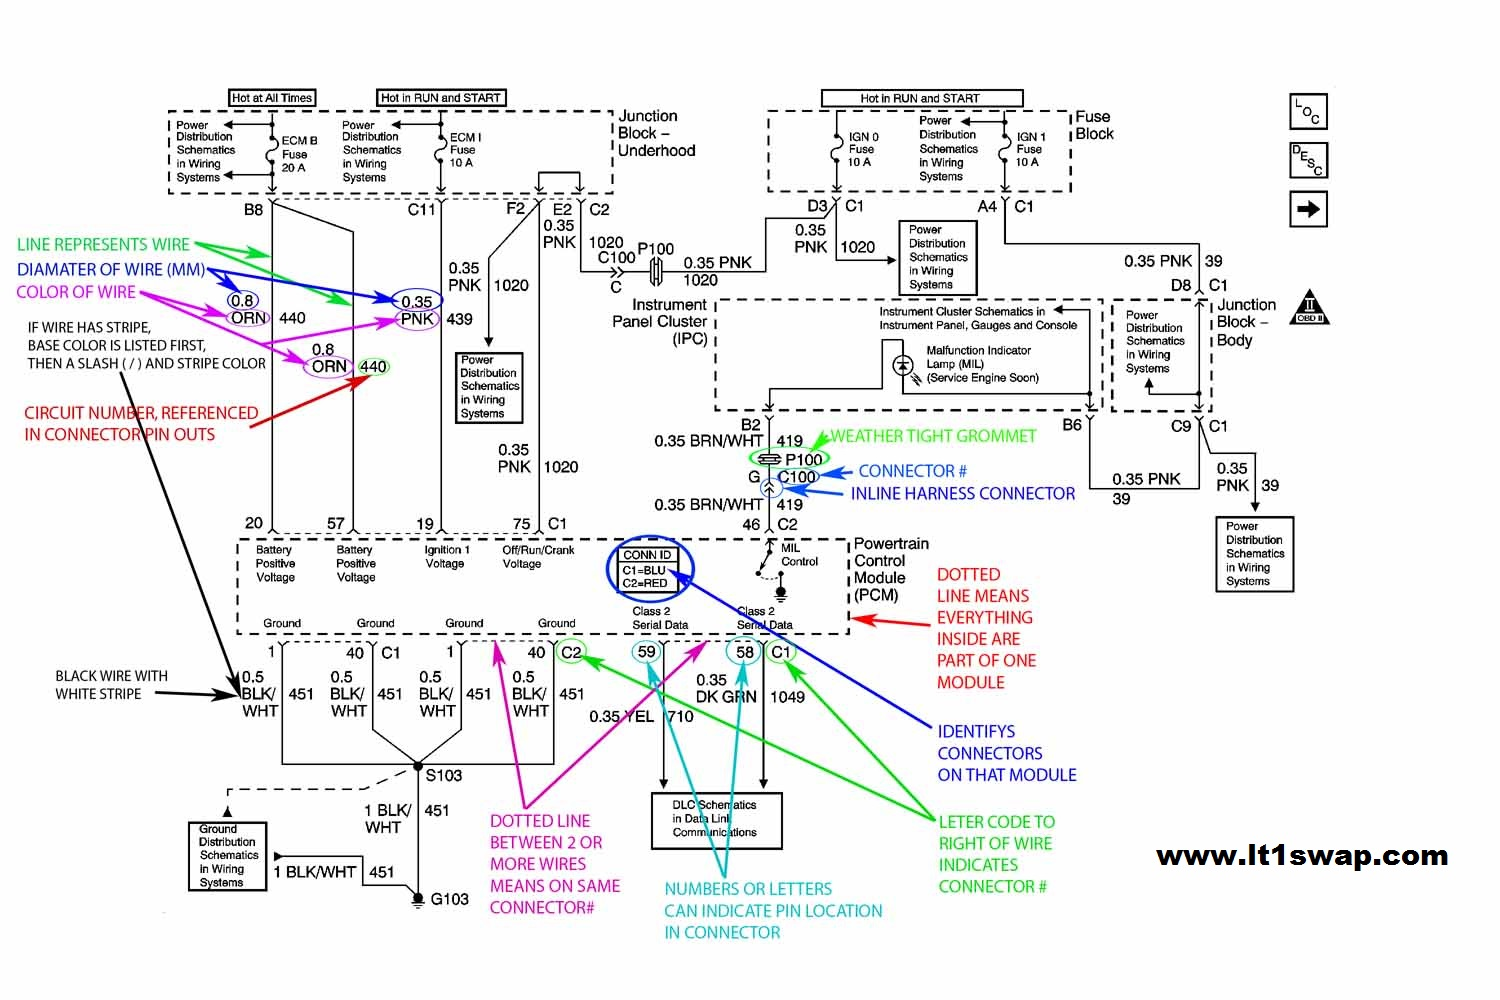 Engine Harness Wiring Dia Just Another Diagram Blog Volkswagen Beta Radio Information Rh Lt1swap Com 350z Subaru